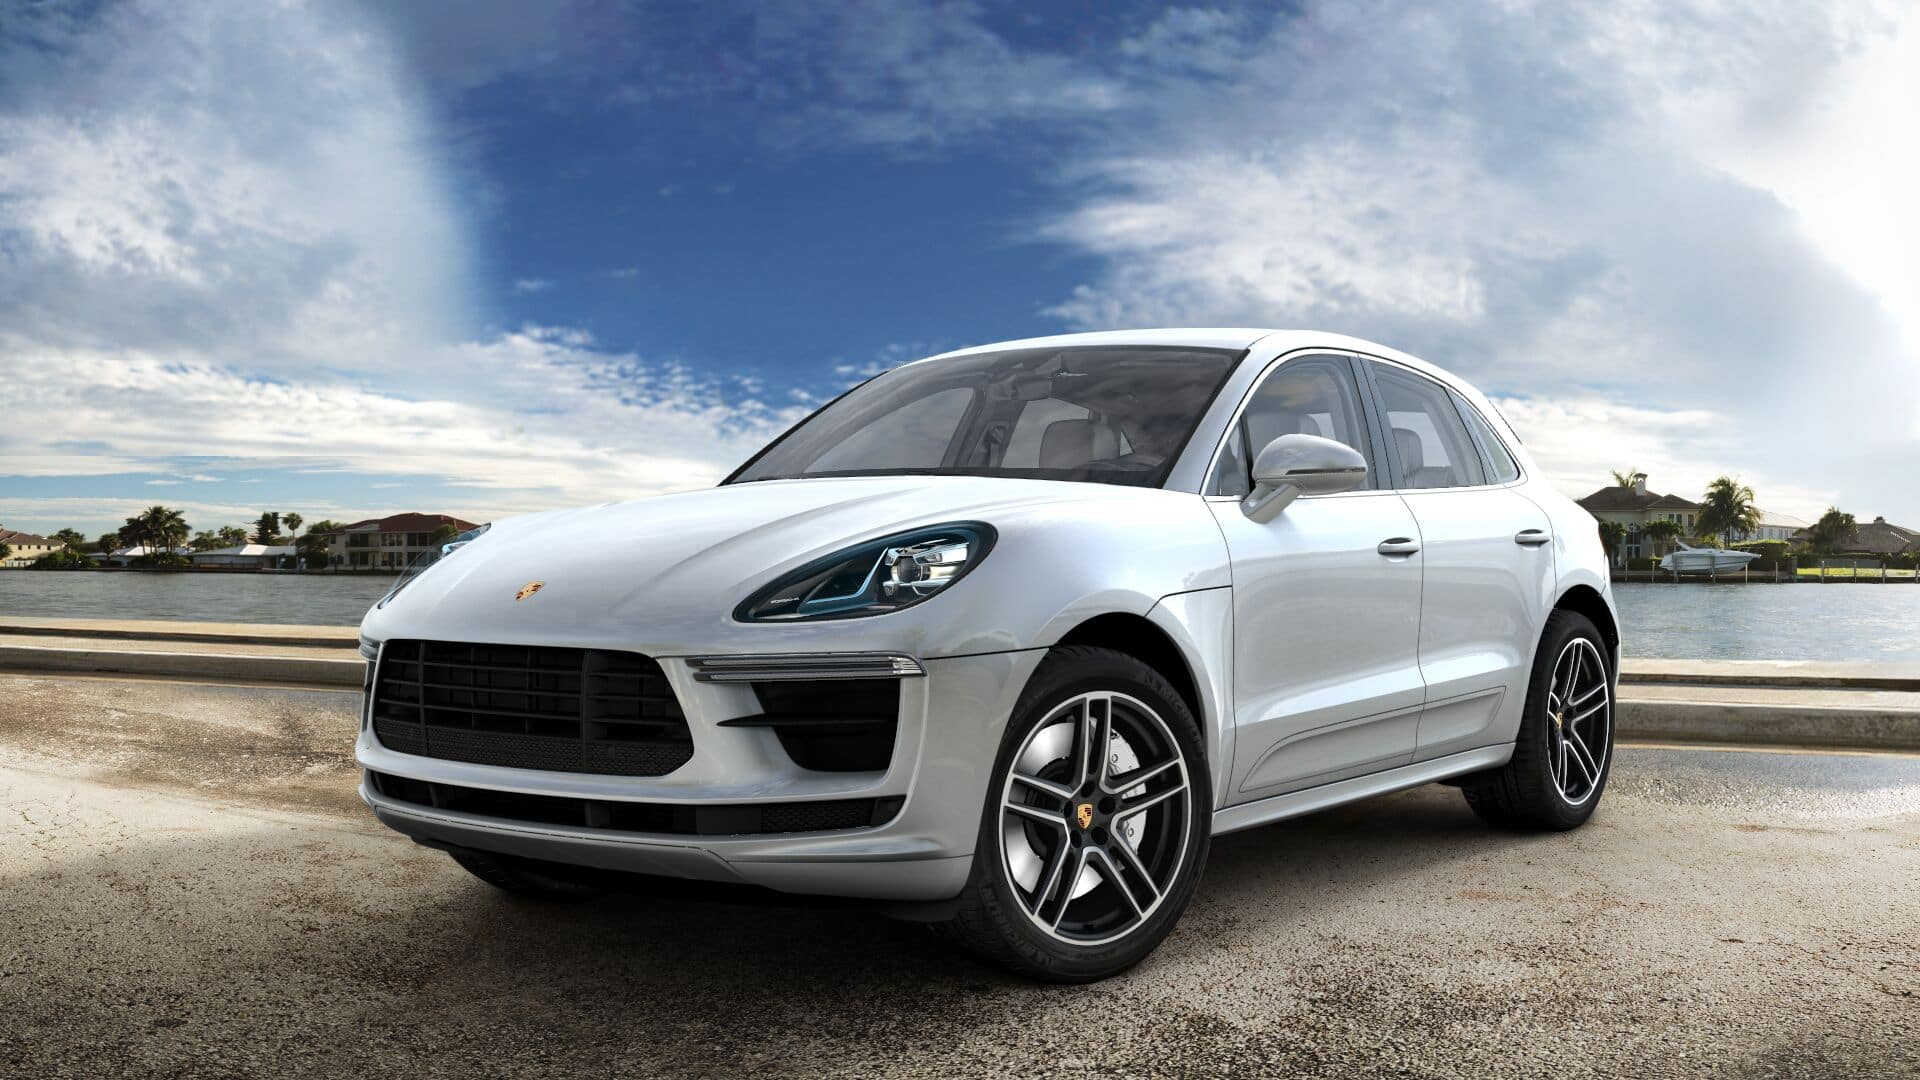 2020 Porsche Macan Turbo | Macan Turbo Price | Porsche West Palm Beach, South Florida